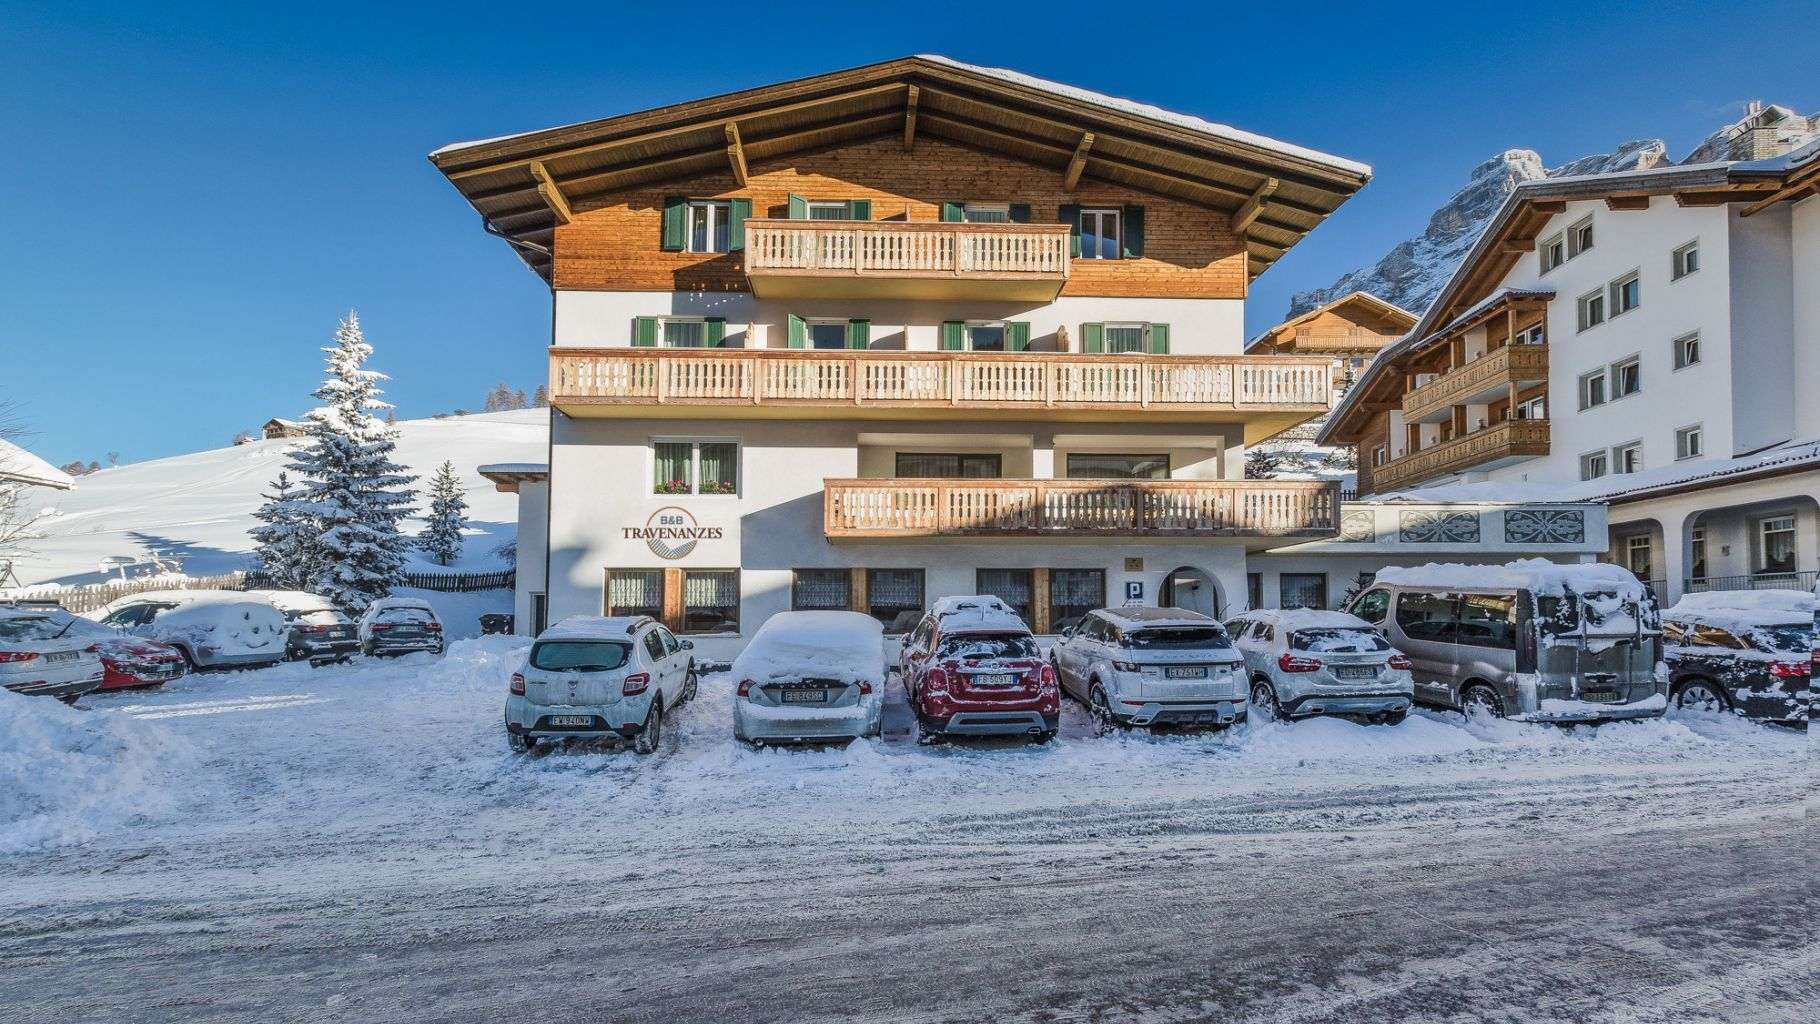 Pension Travenanzes in Alta Badia